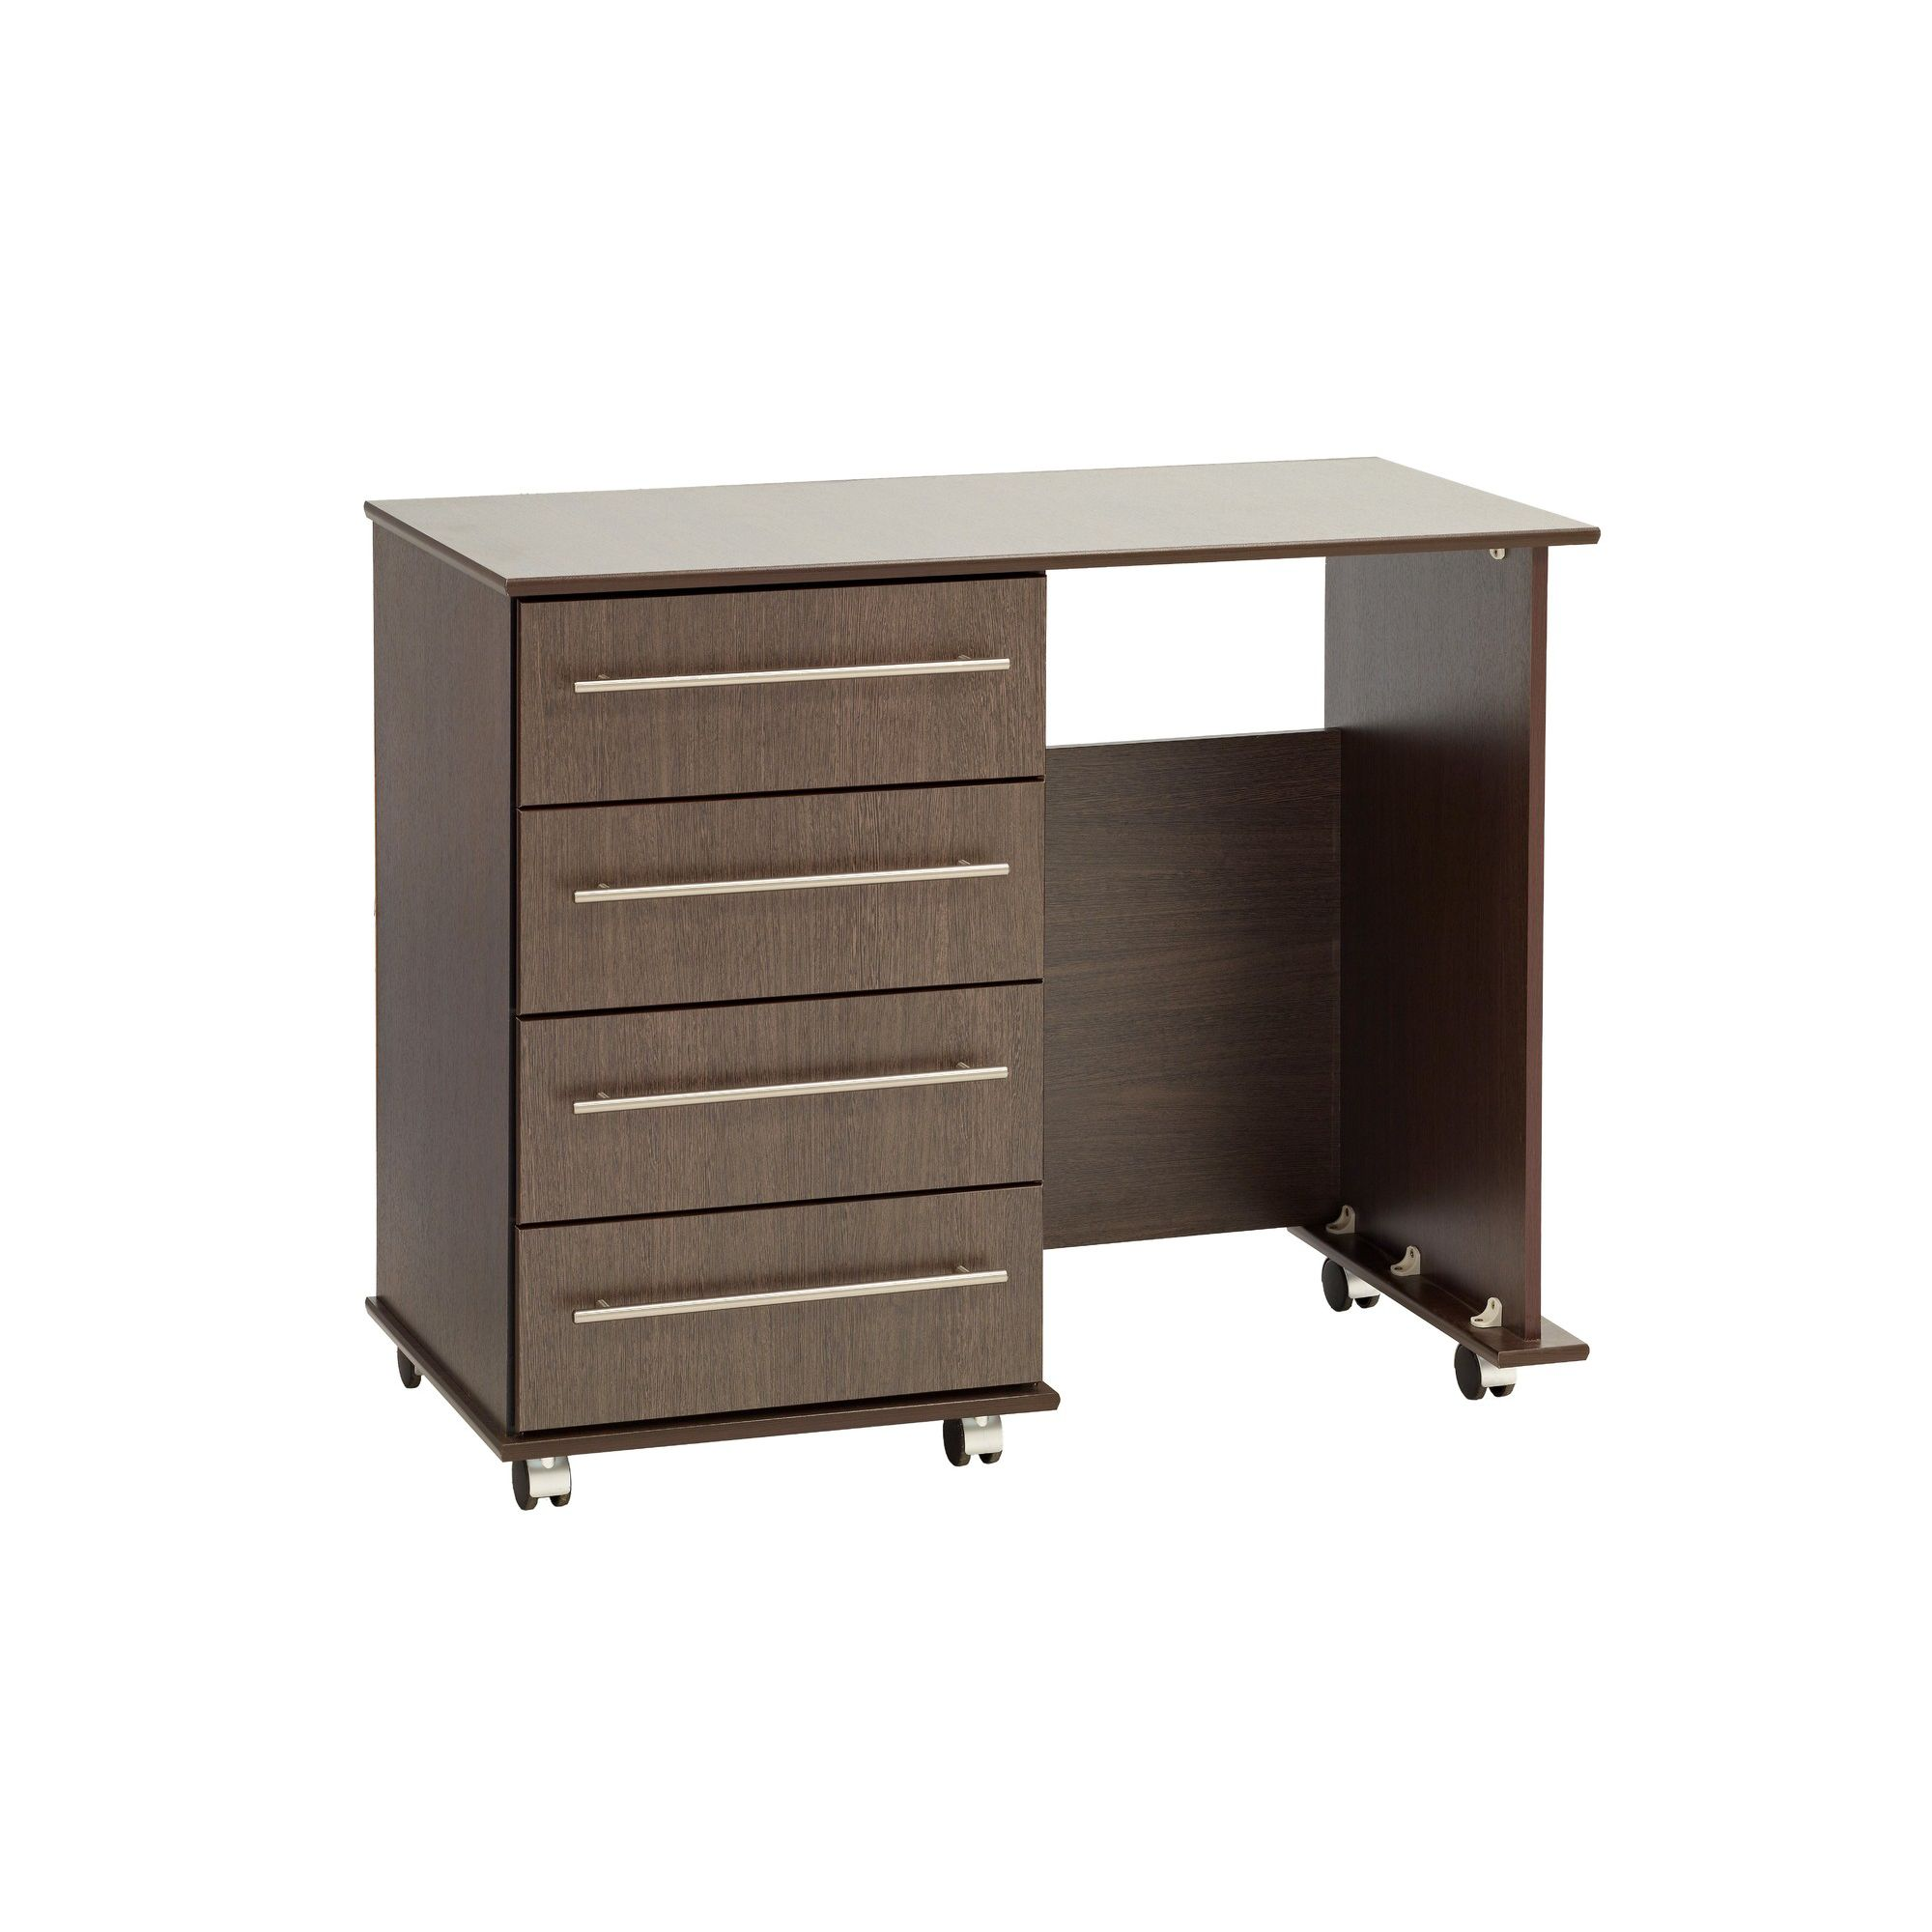 Ideal Furniture New York Single Dressing Table - Wenge at Tesco Direct